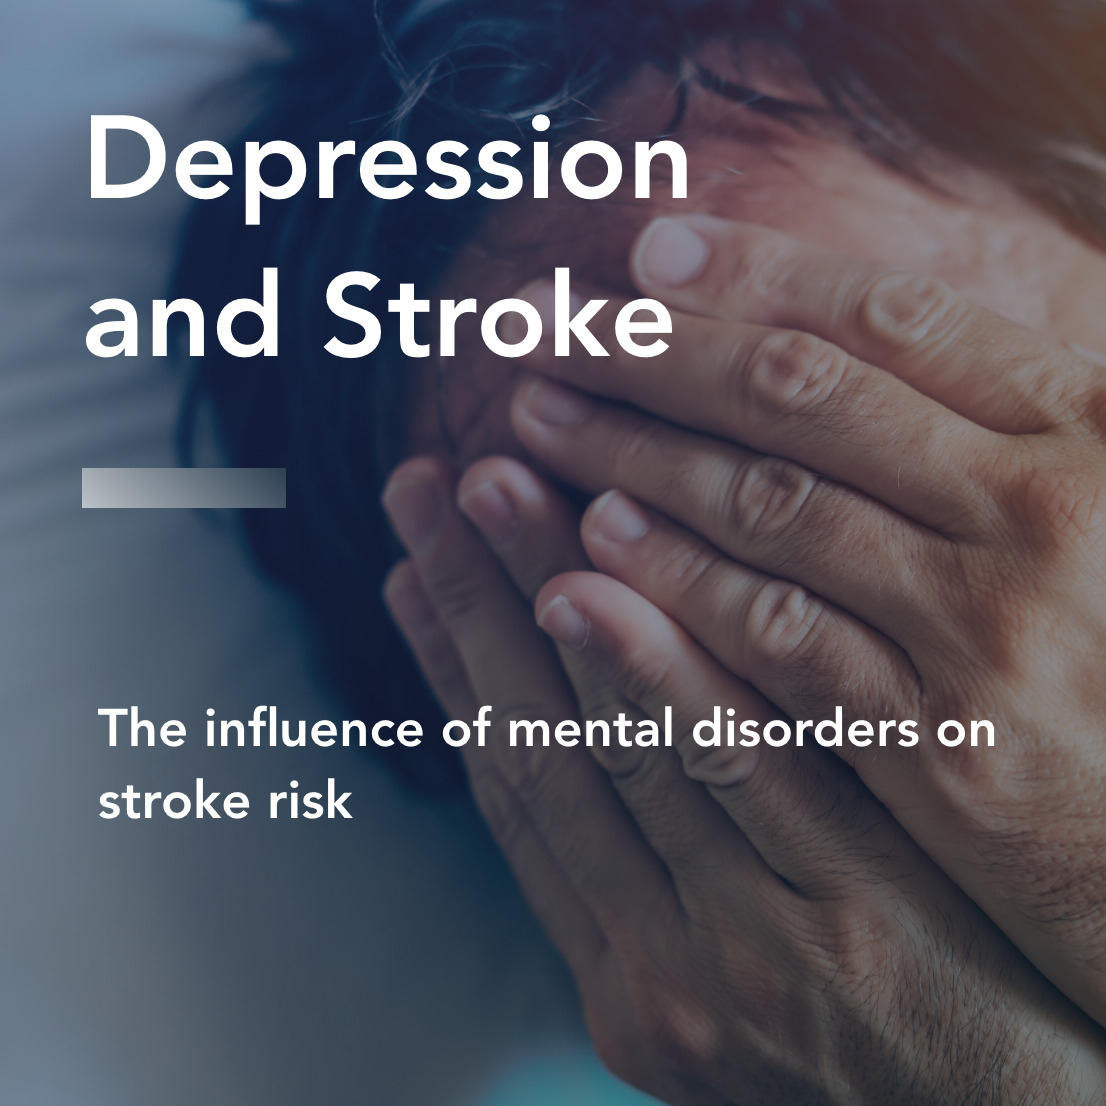 depression and stroke title